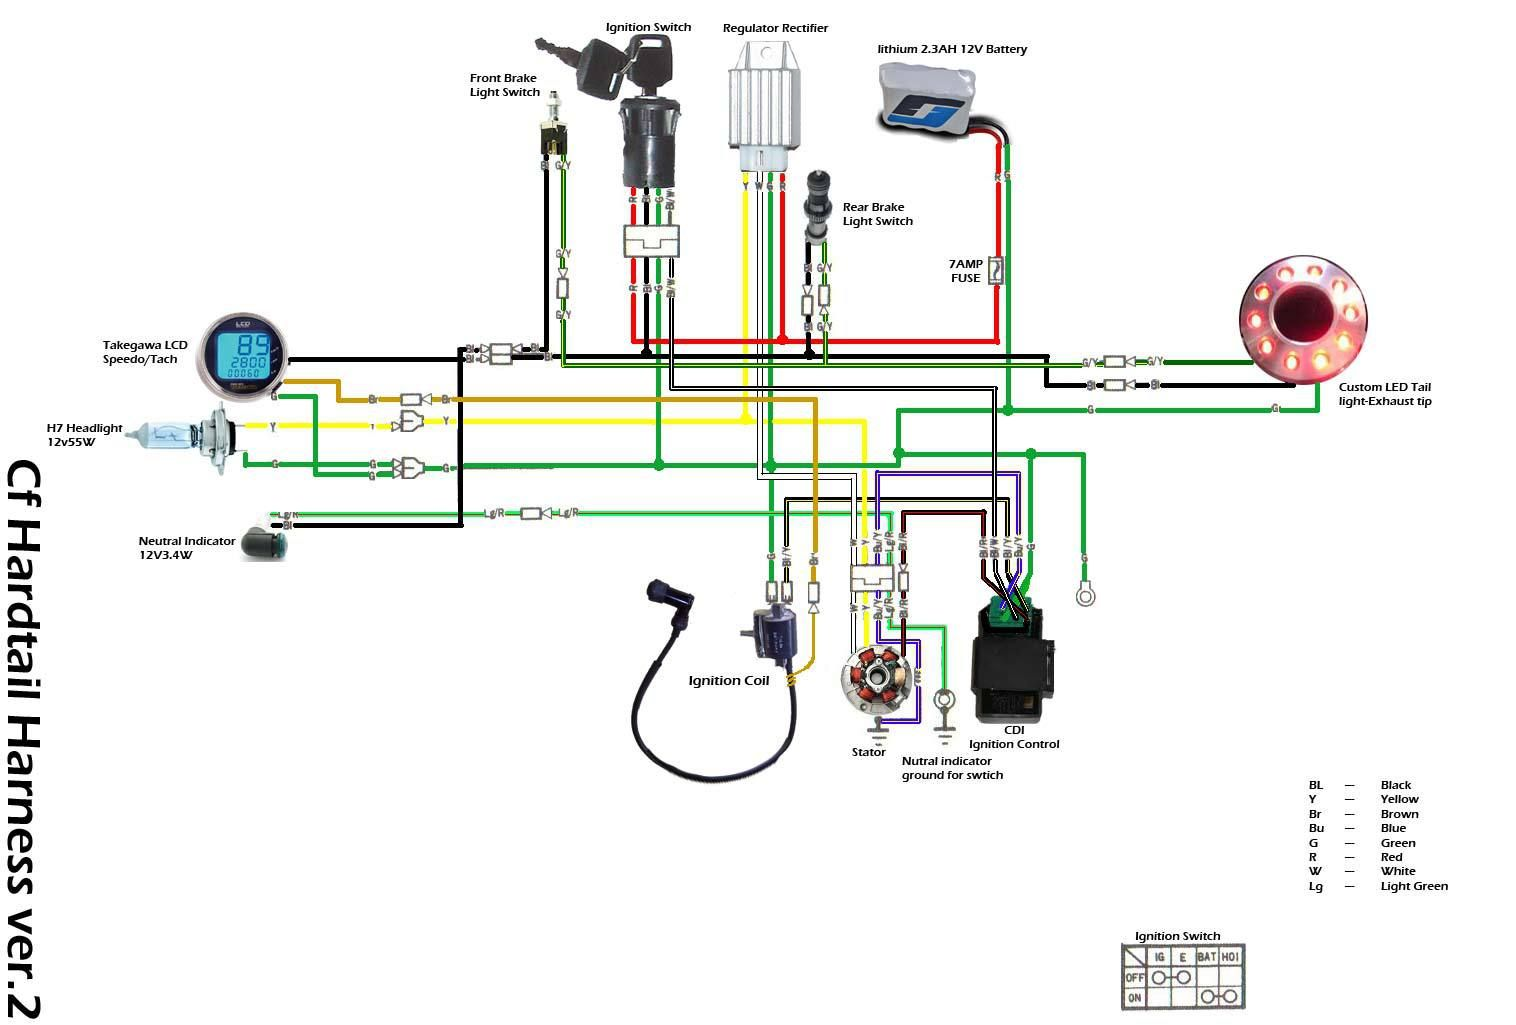 led atv wiring diagram wiring diagram 110cc basic wiring setup atvconnection com atv enthusiast community110cc basic [ 1516 x 1025 Pixel ]